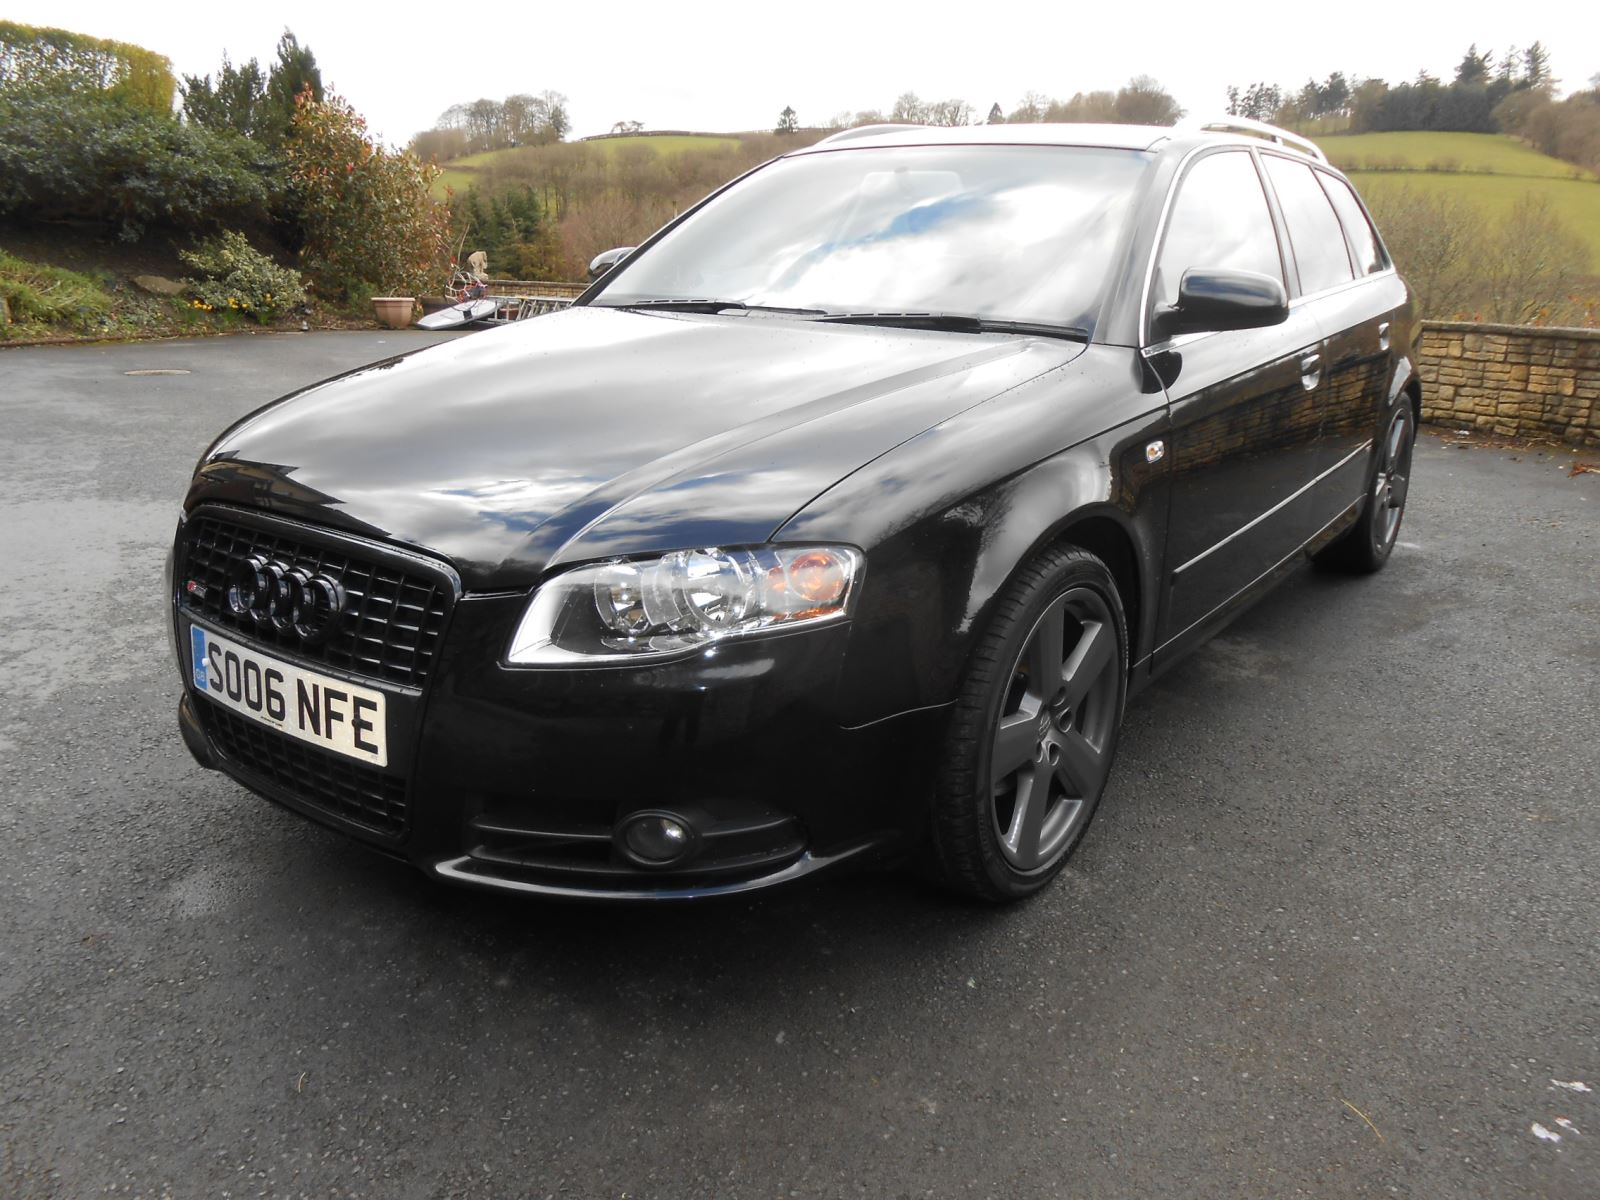 audi a4 avant 1 9 tdi 115 s line car for sale llanidloes. Black Bedroom Furniture Sets. Home Design Ideas